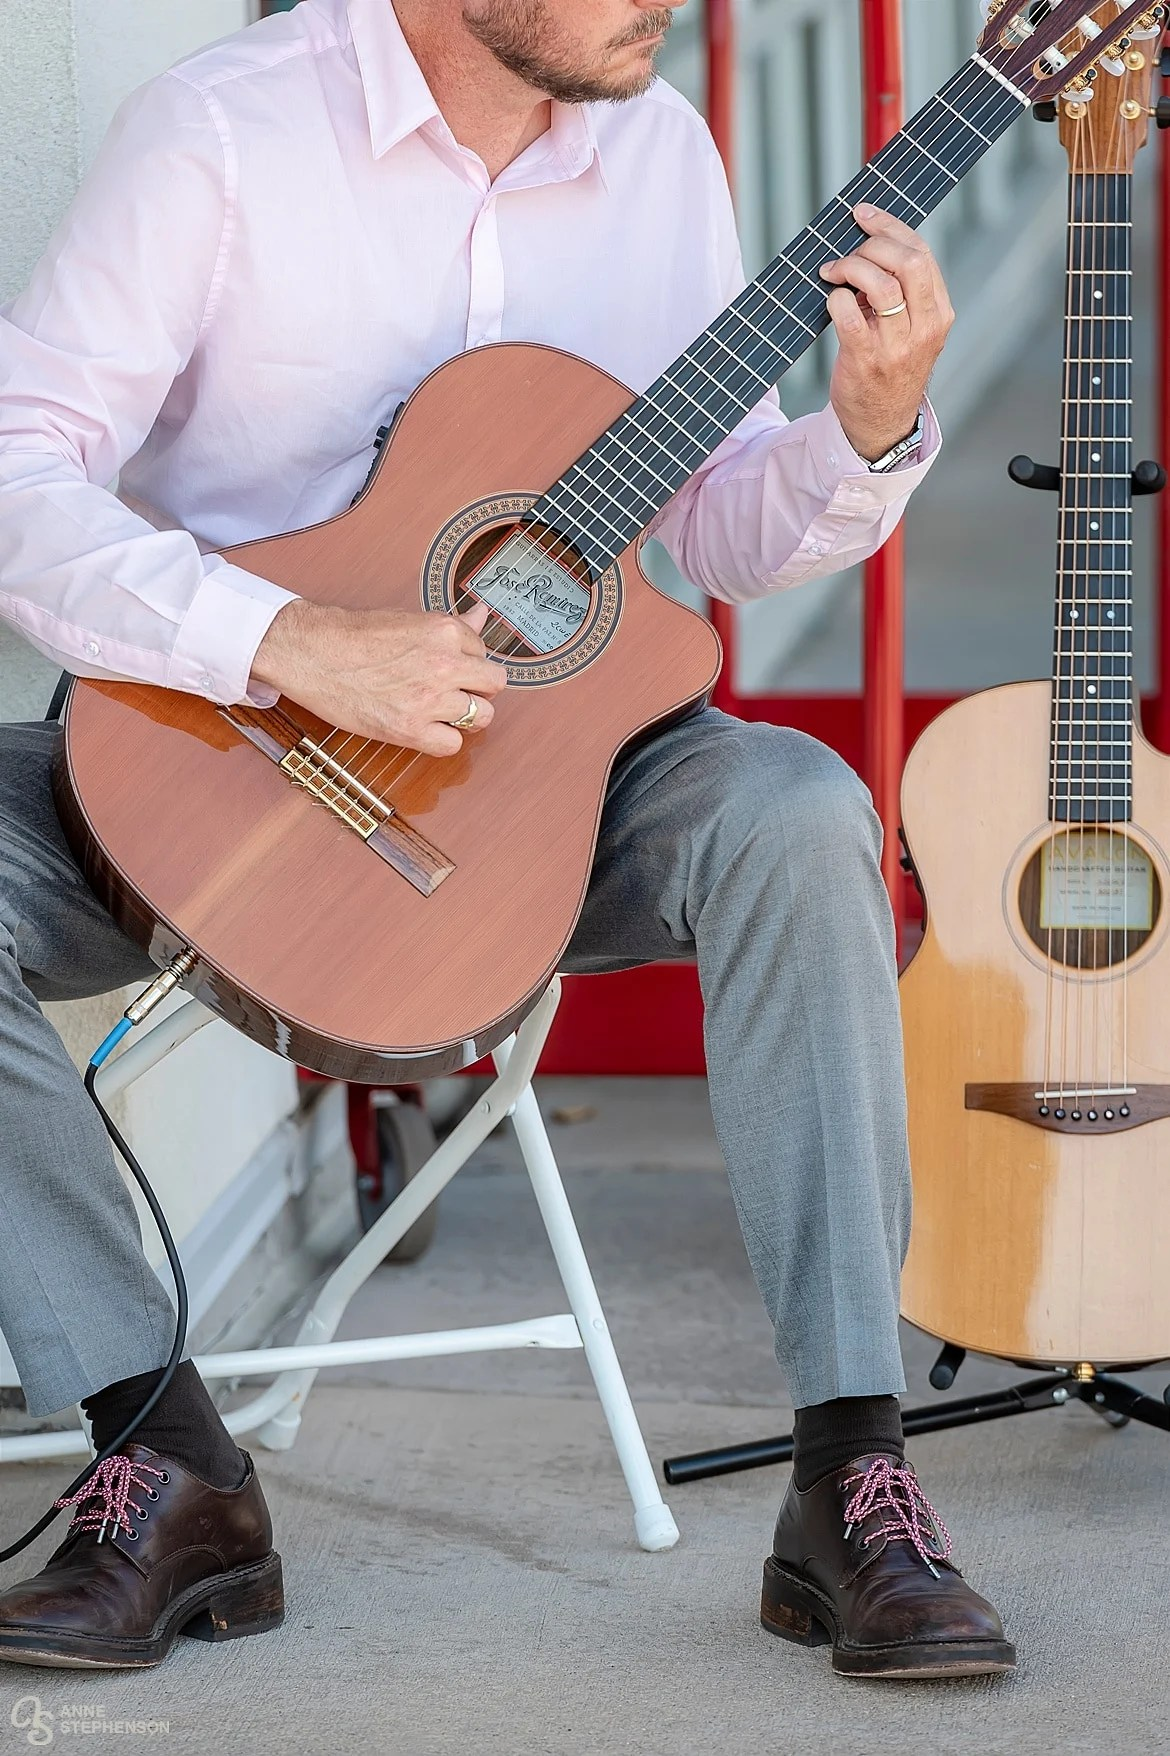 Guitar music performed by musician Michael Lancaster.